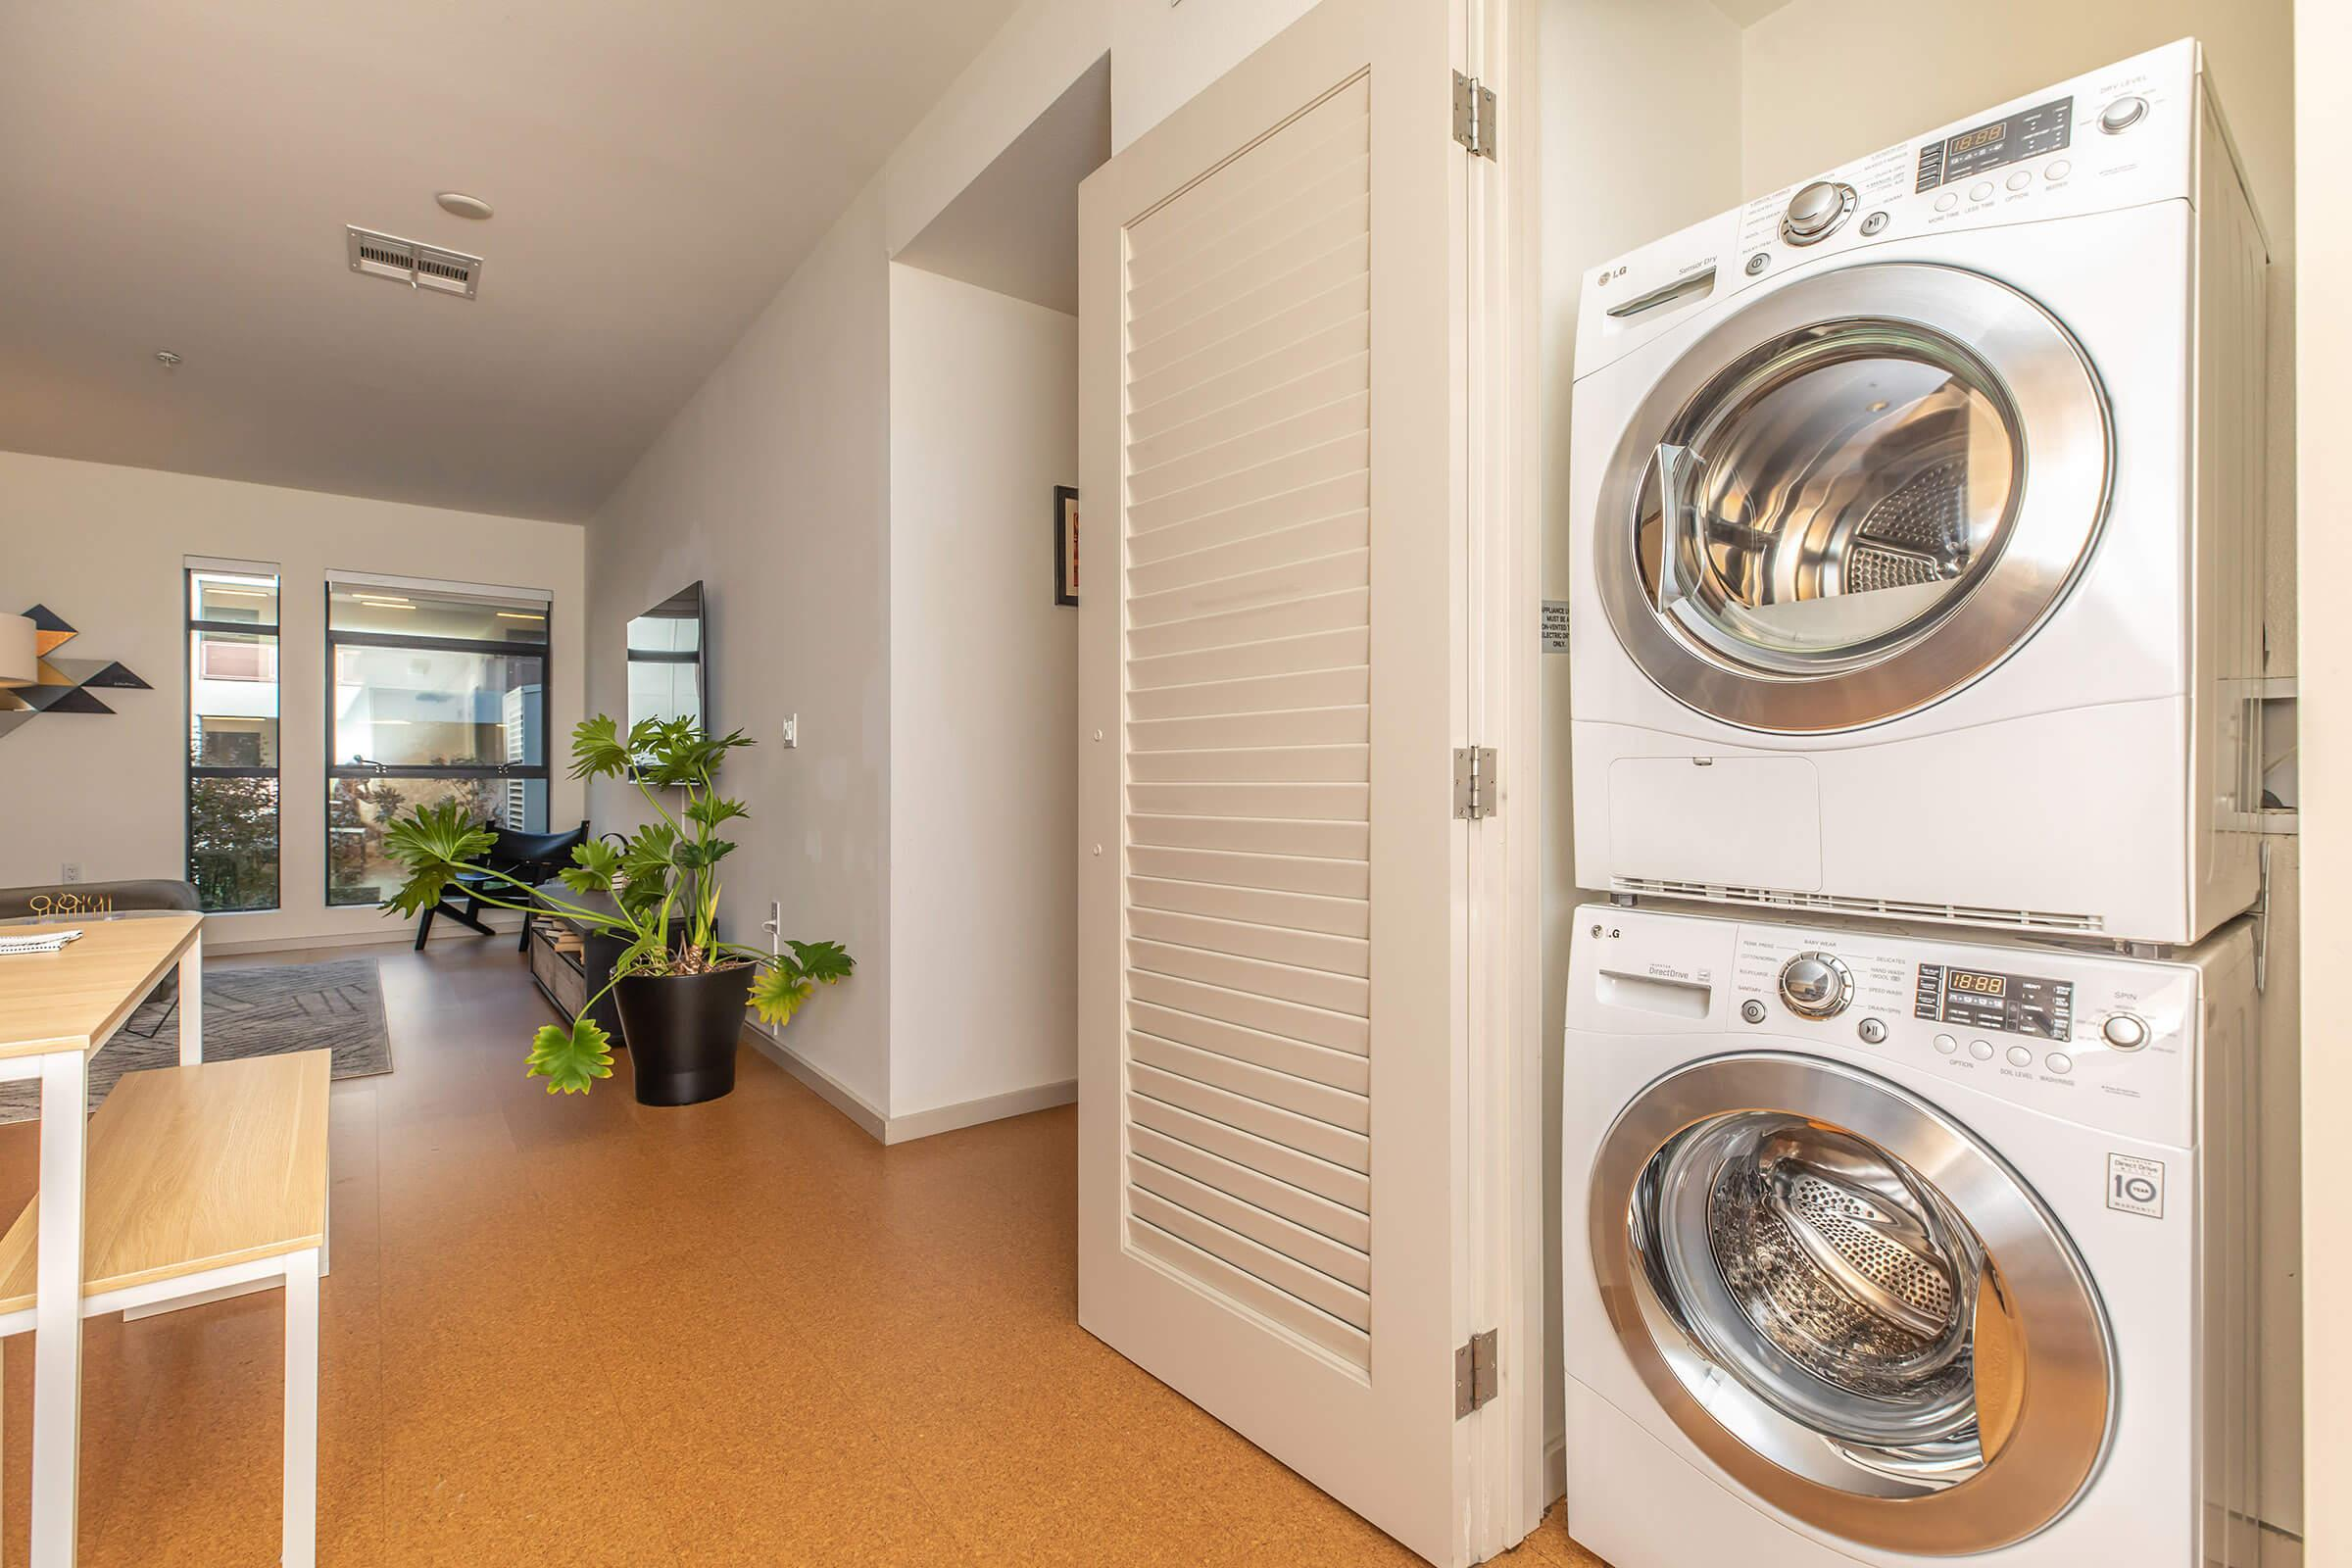 Washer and dryer across from kitchen